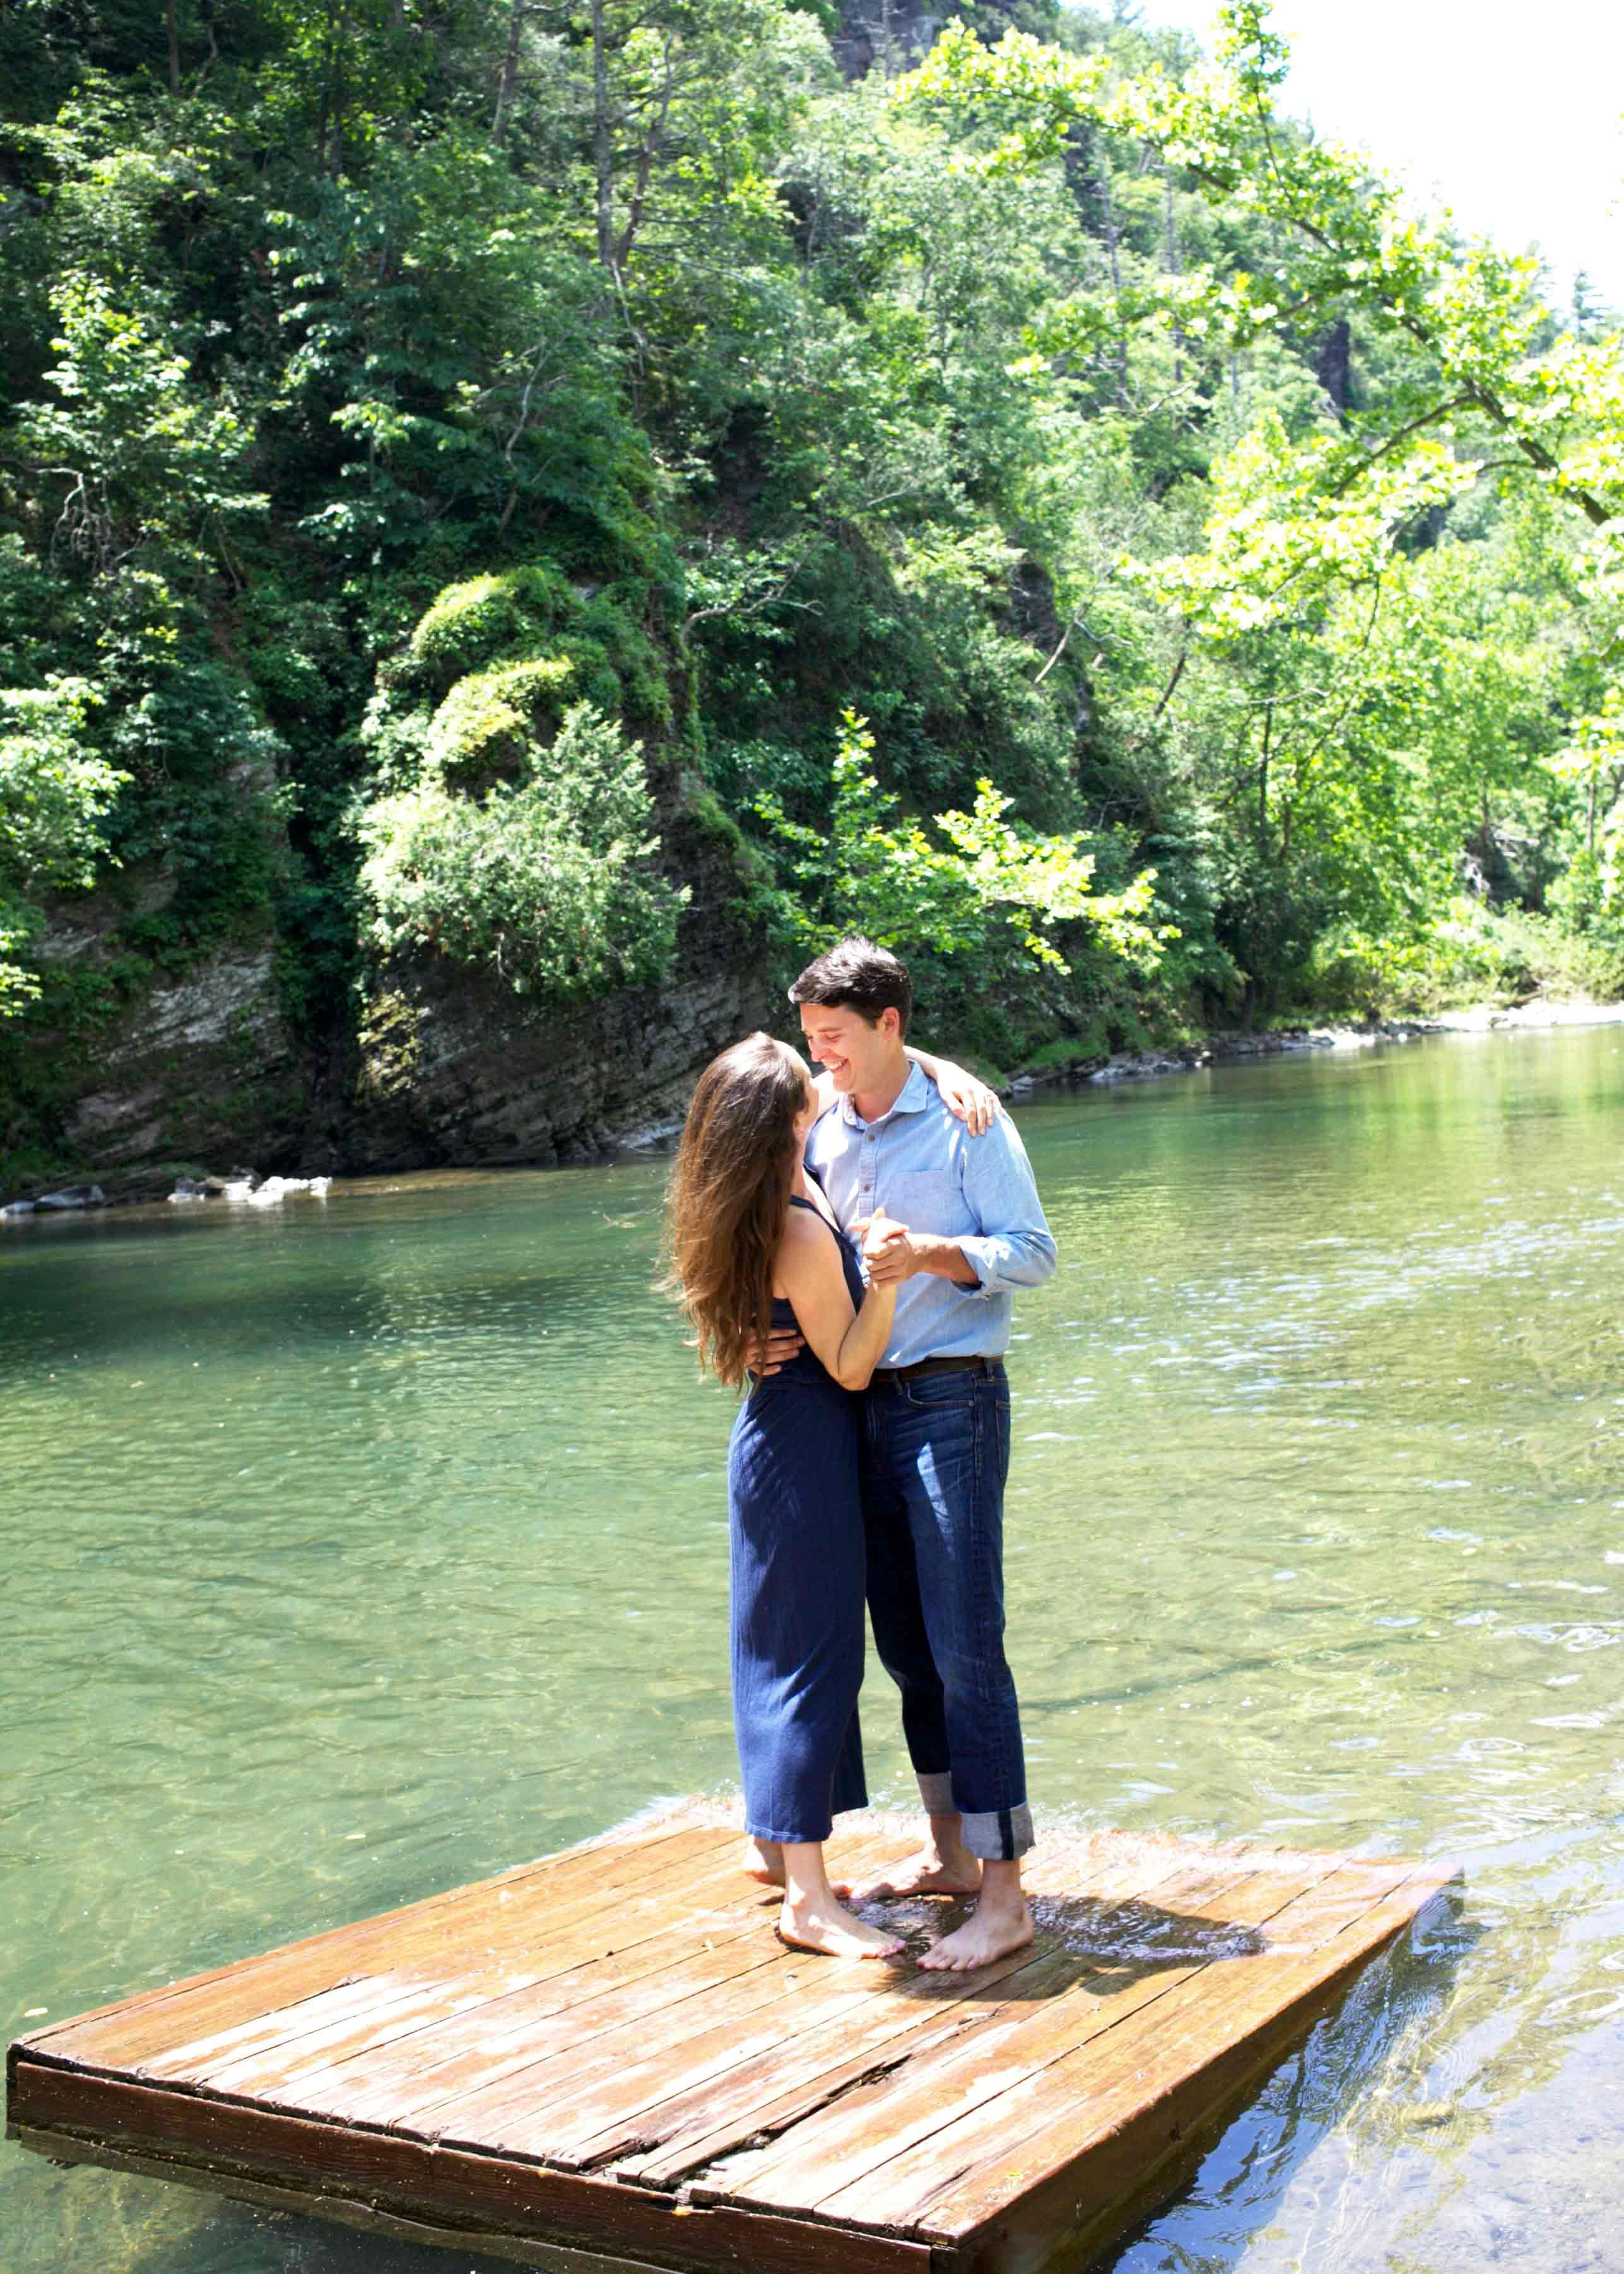 Pin By Fort Lewis Lodge & Farm On Weddings & Special